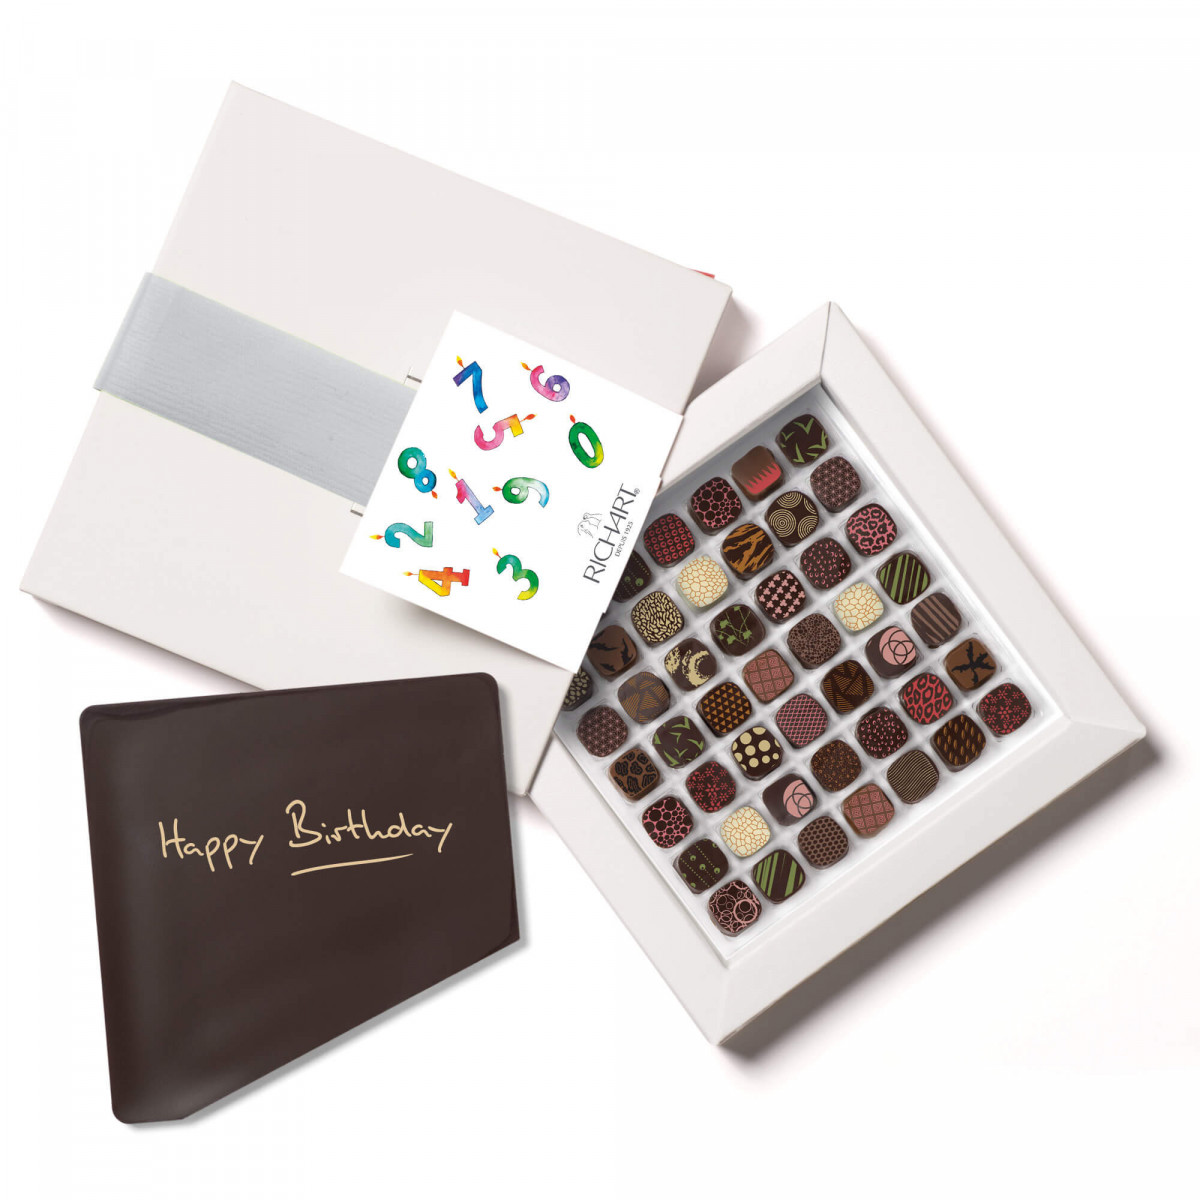 Petits RICHART Intense Happy Birthday Box of 49 filled chocolates